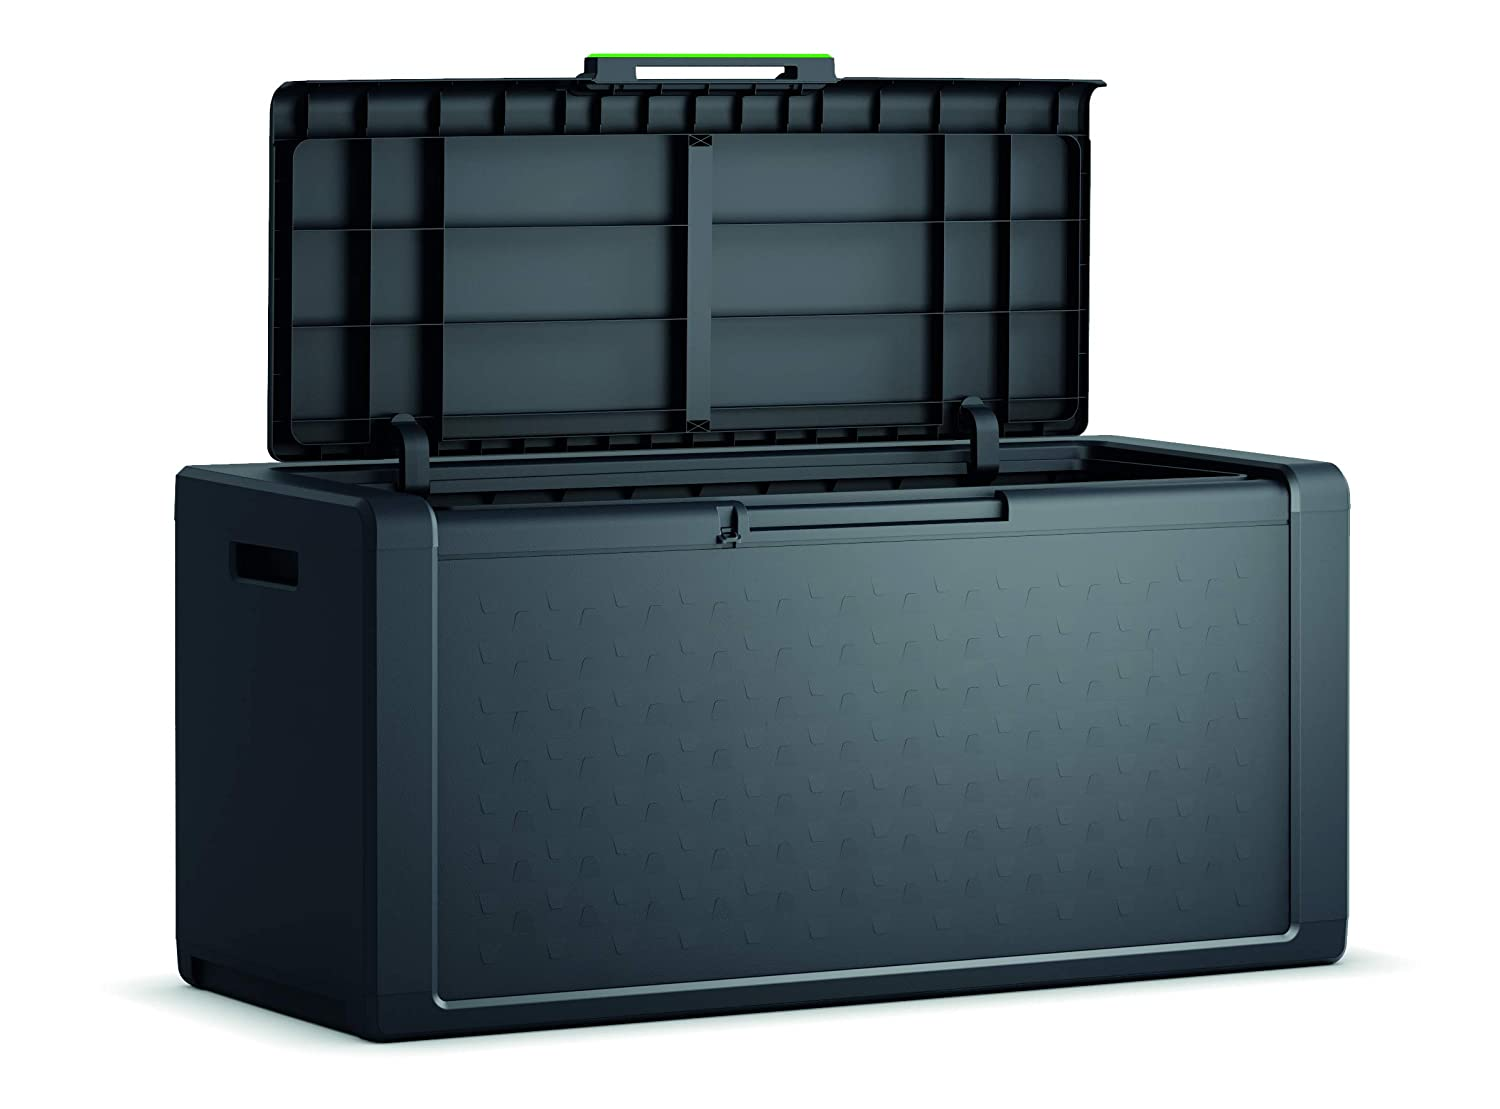 Cassone Multiuso Impermeabile Cert Ipx1-118X49X55H Antracite Keter Moby Chest